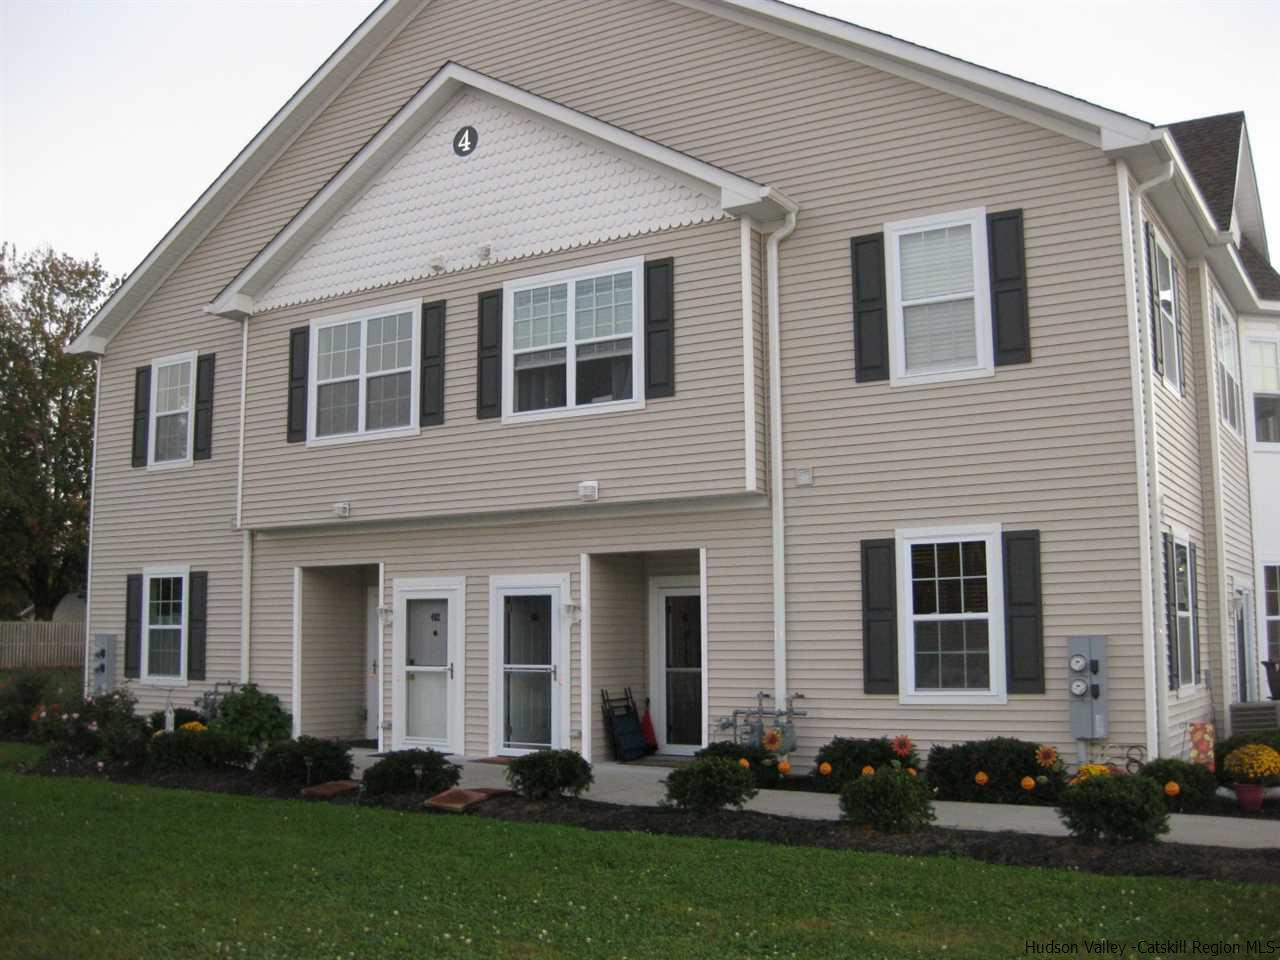 Condominium for Sale at 402 Commons Lane 402 Commons Lane Saugerties, New York 12477 United States